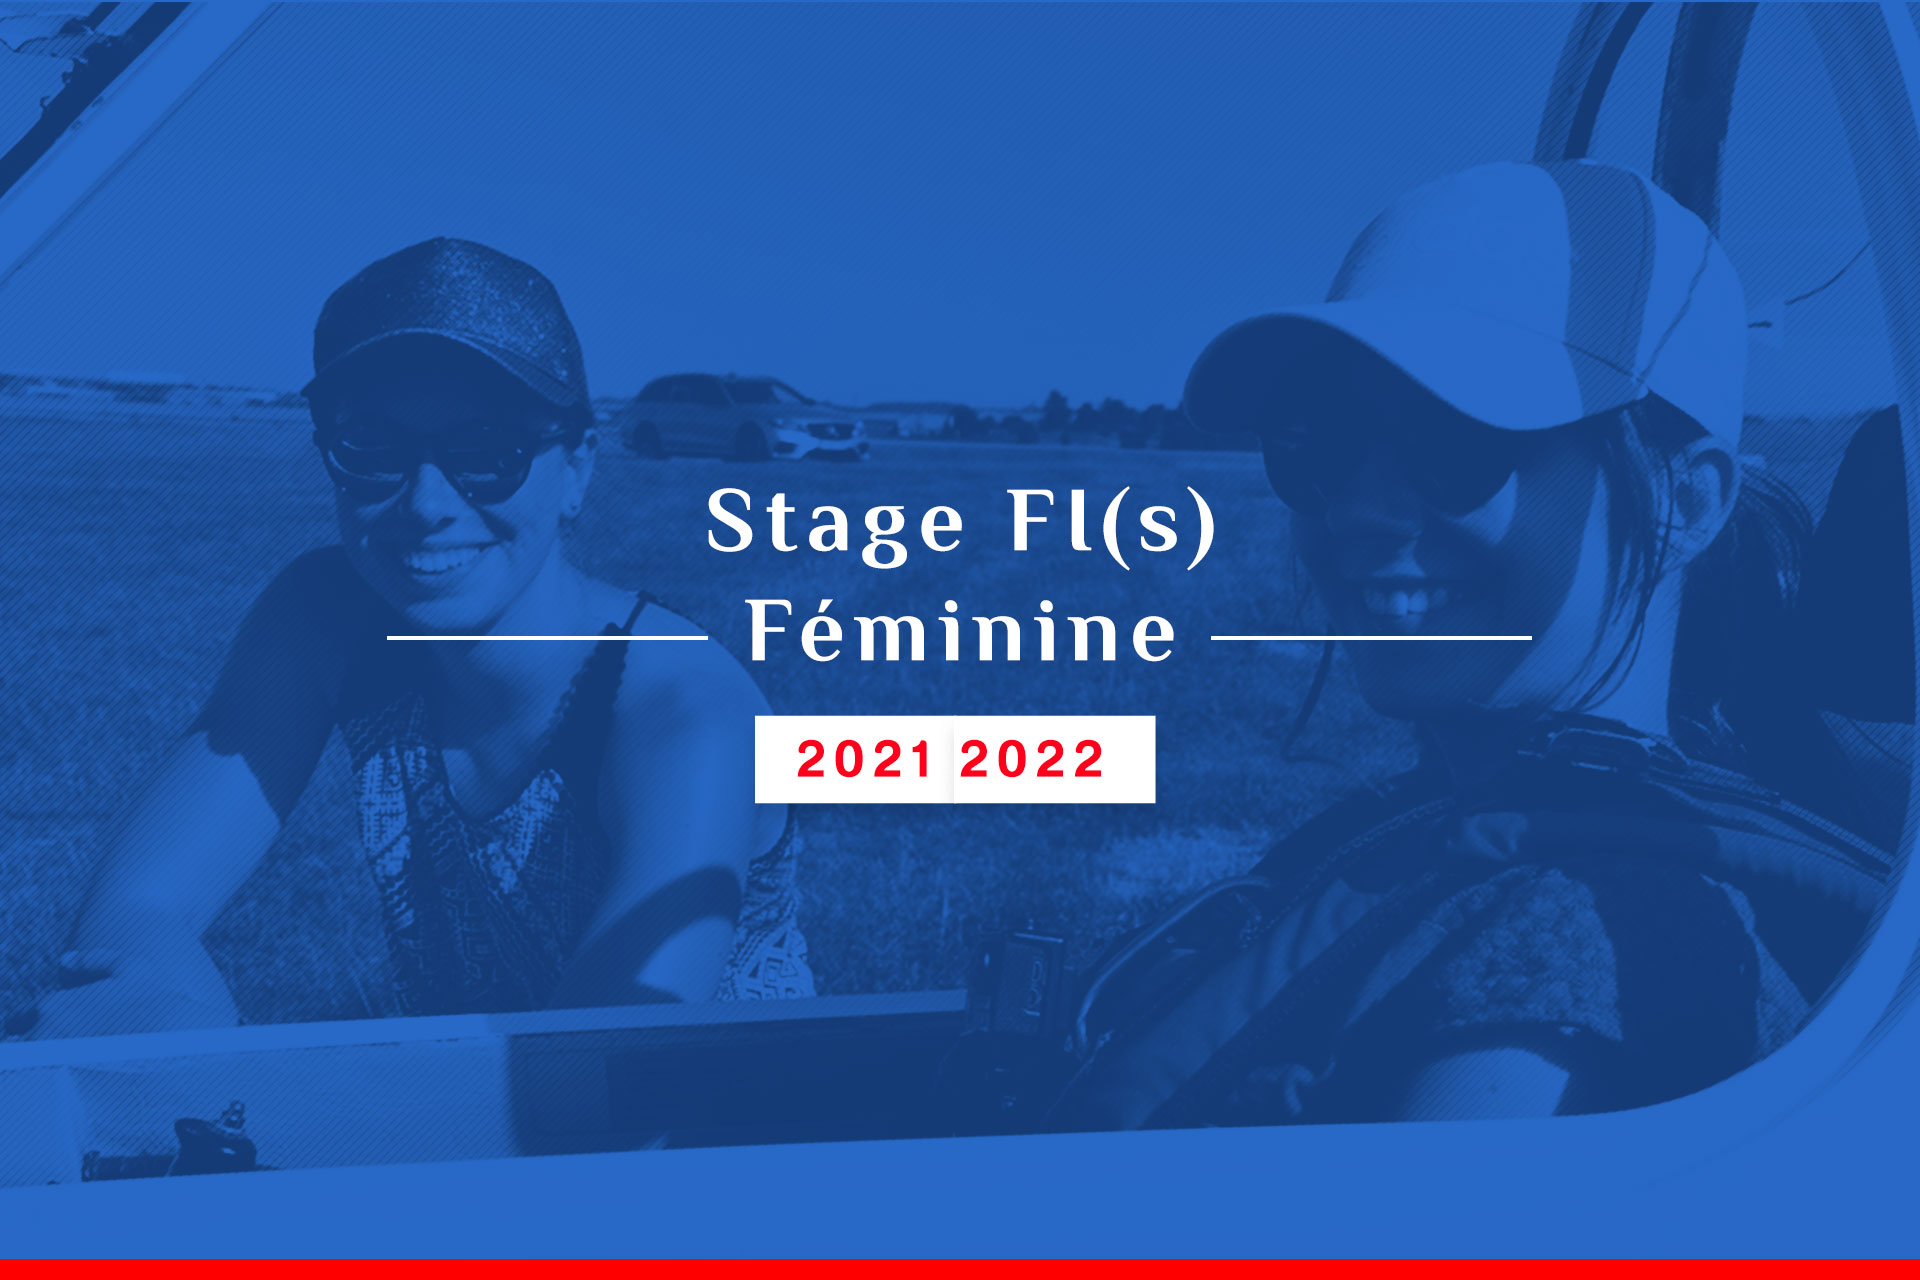 Stages FI(s) féminines